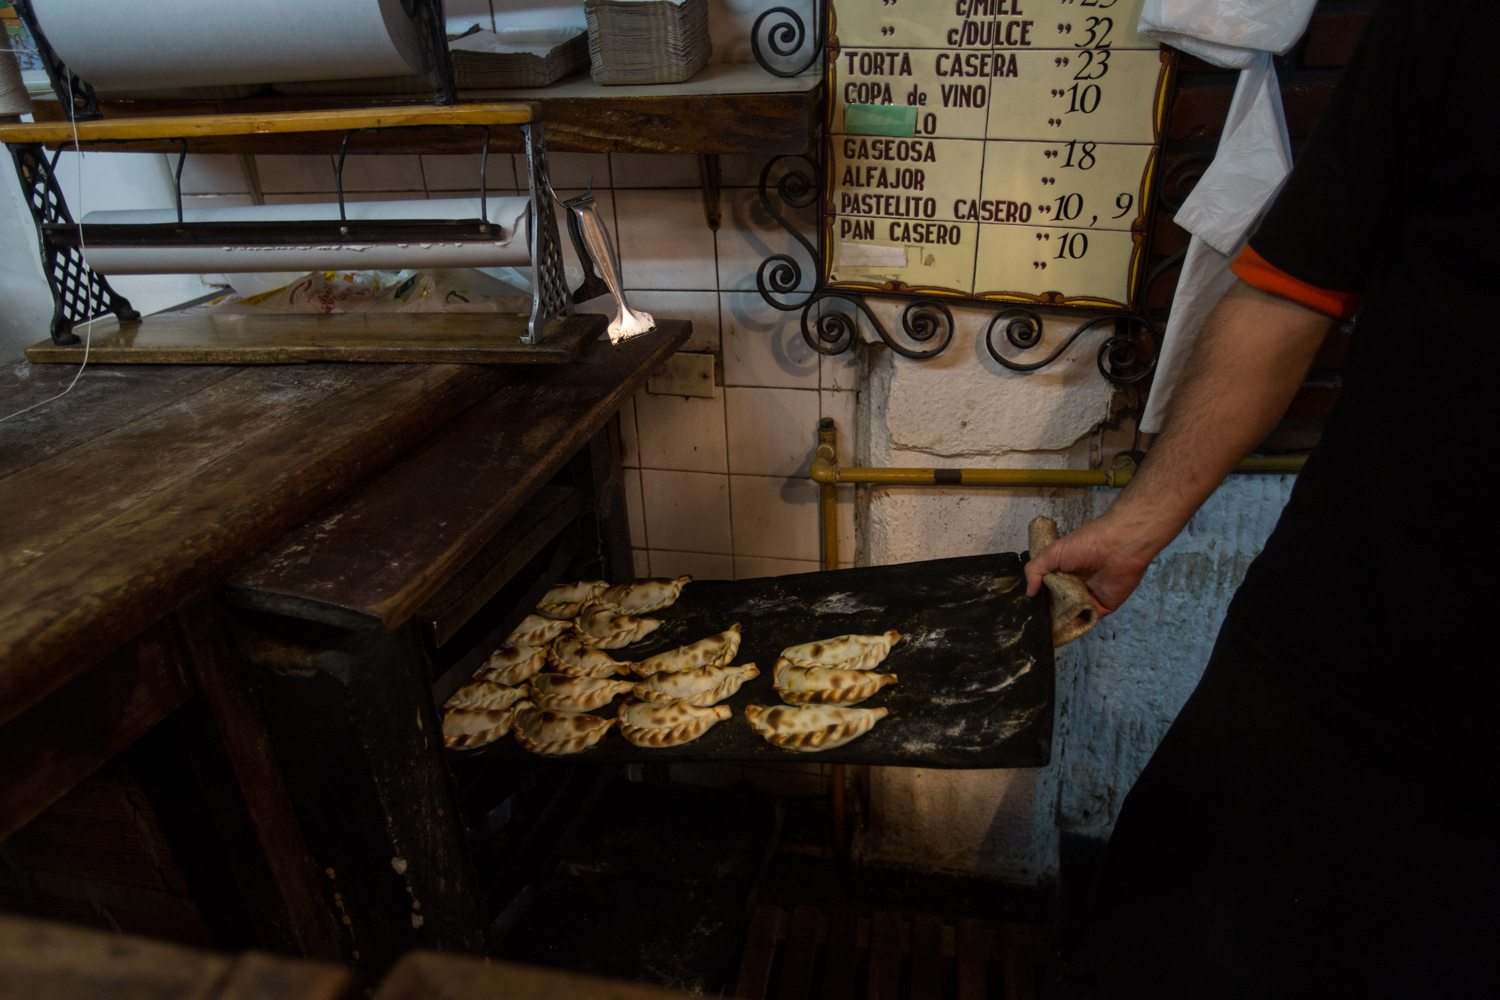 Empanadas are made in the back and then kept warm in this old oven.